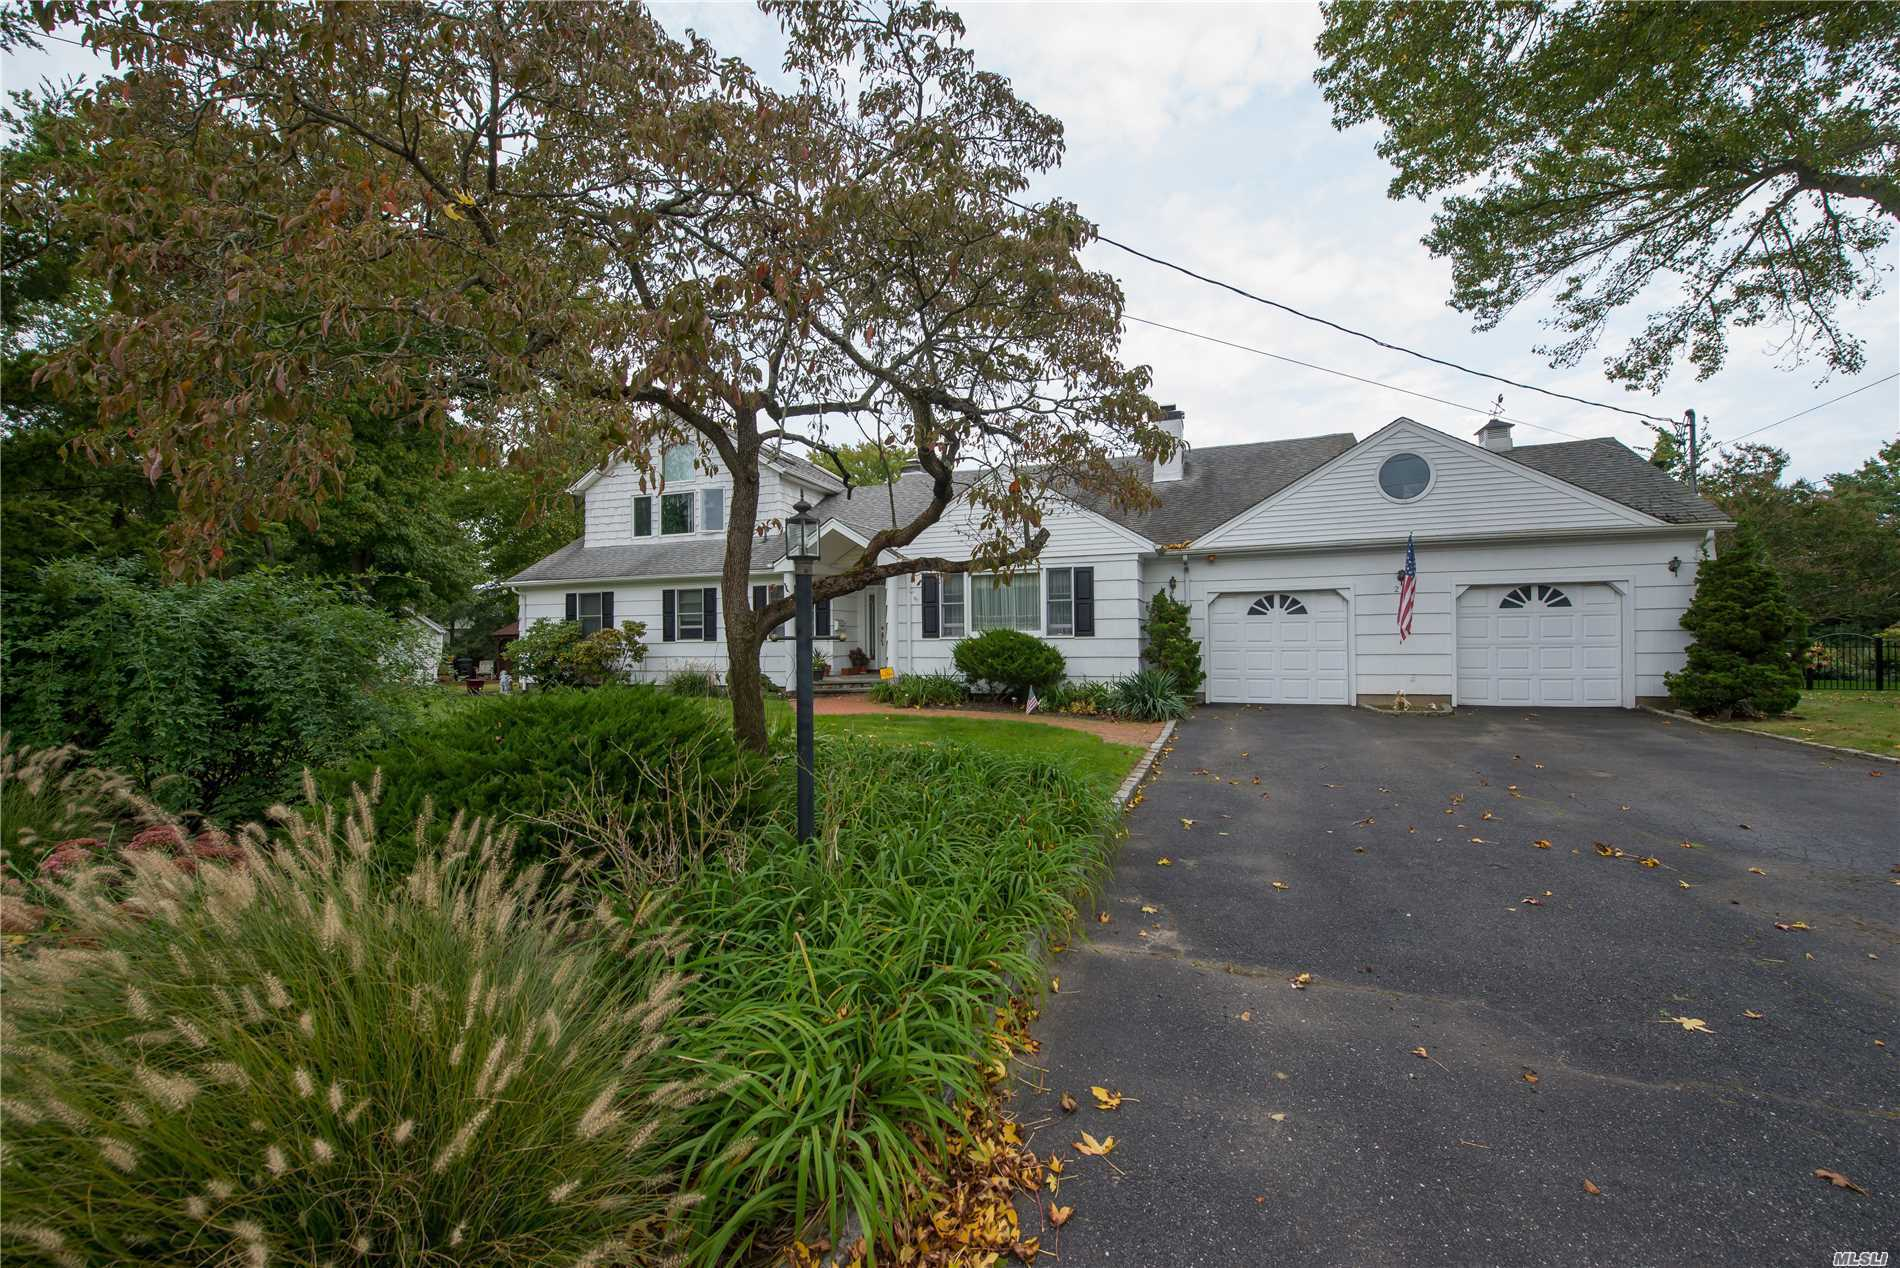 Large Colonial/Farm Ranch With Expansive Floor Plan In Desirable Blue Harbor (South Of Montauk) In Babylon Village. Convertible Floor Plan With Master Bedroom On 1st Or 2nd Floor. Tranquil Pond Front Location On .37 Acre.